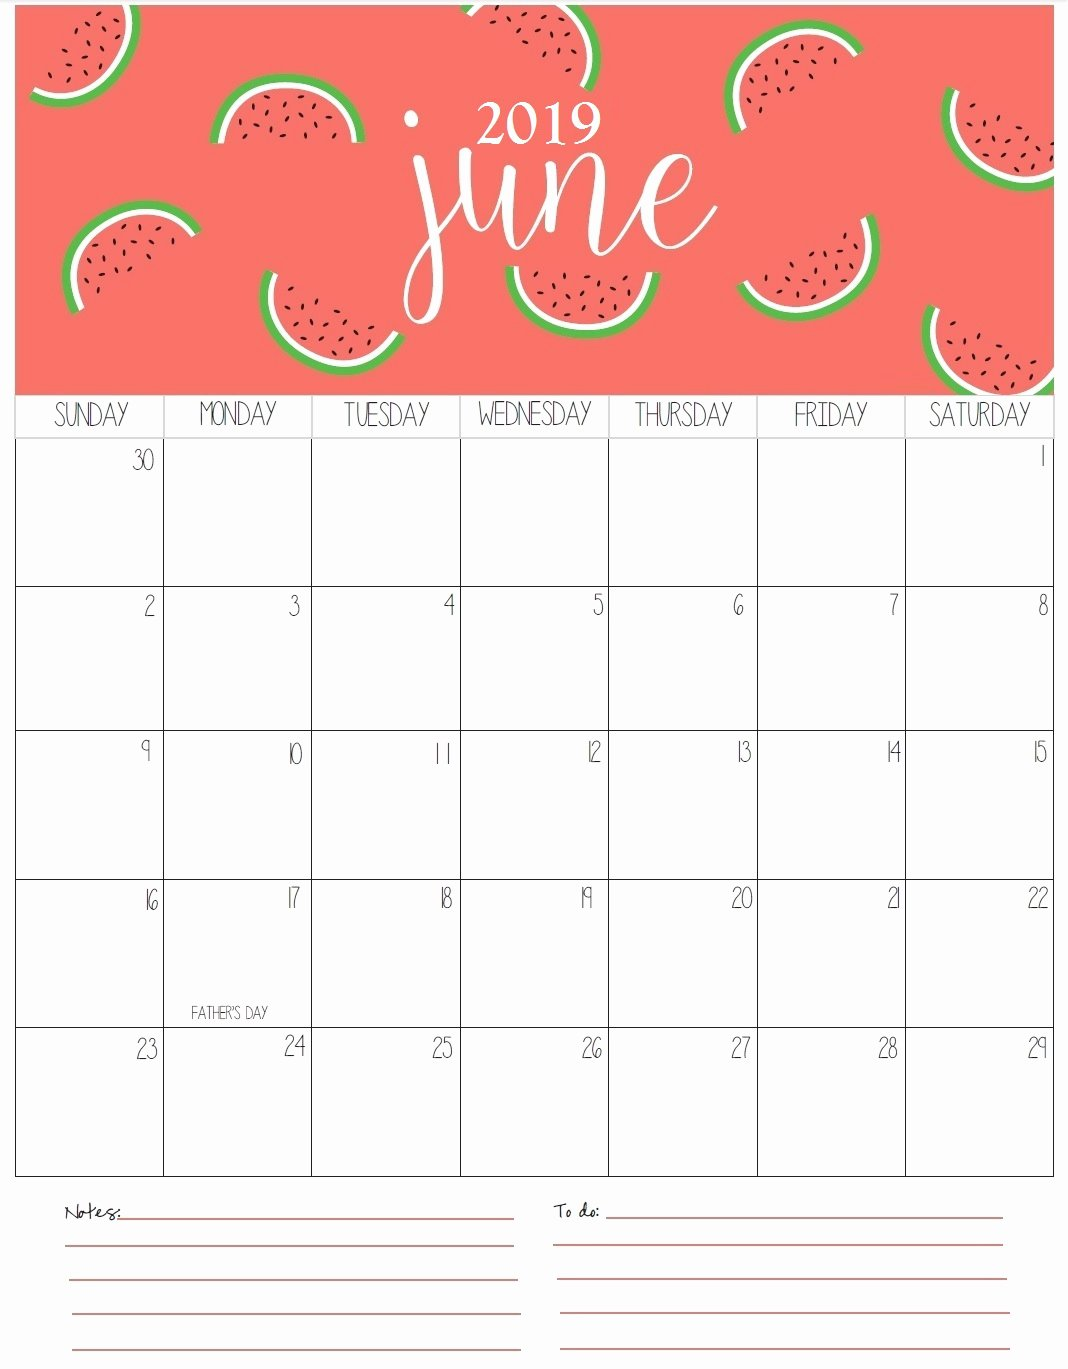 Monthly Calendar Template 2019 Beautiful Monthly Printable Calendar 2019